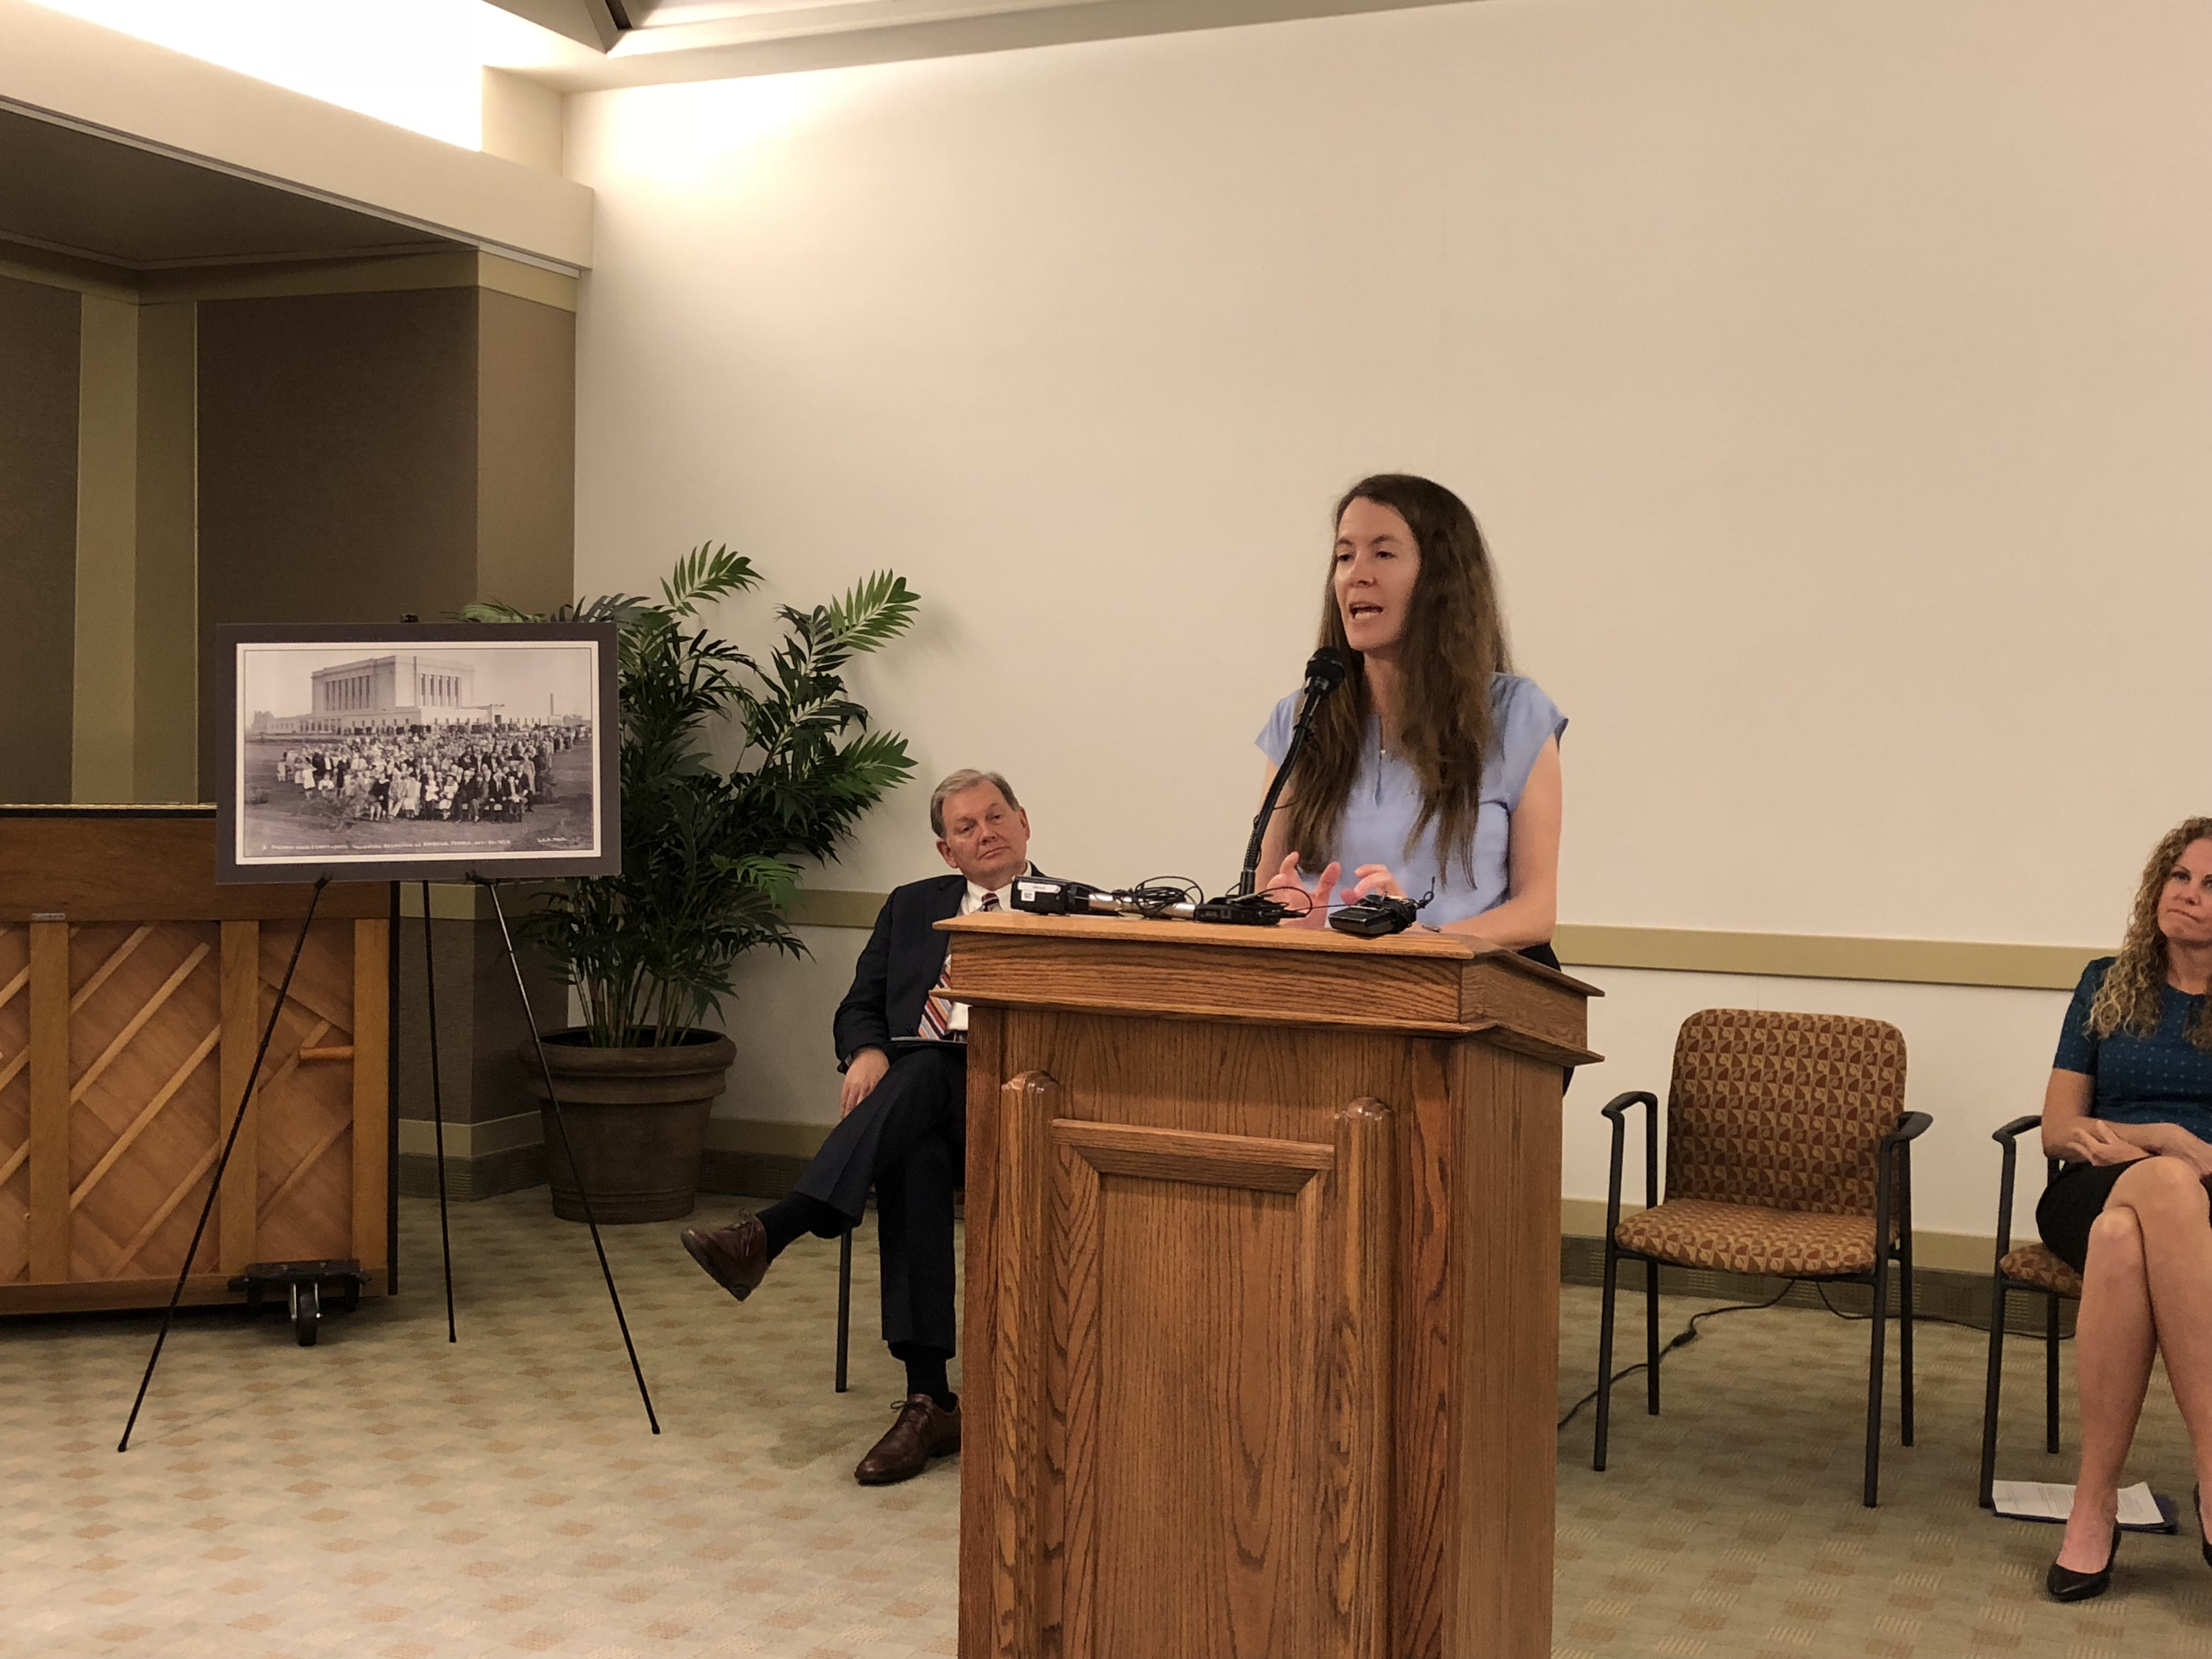 Emily Utt, Church historical curator, gave a brief overview of the history of the 75,000-square-foot temple and its renovations over the years at a press conference May 10.